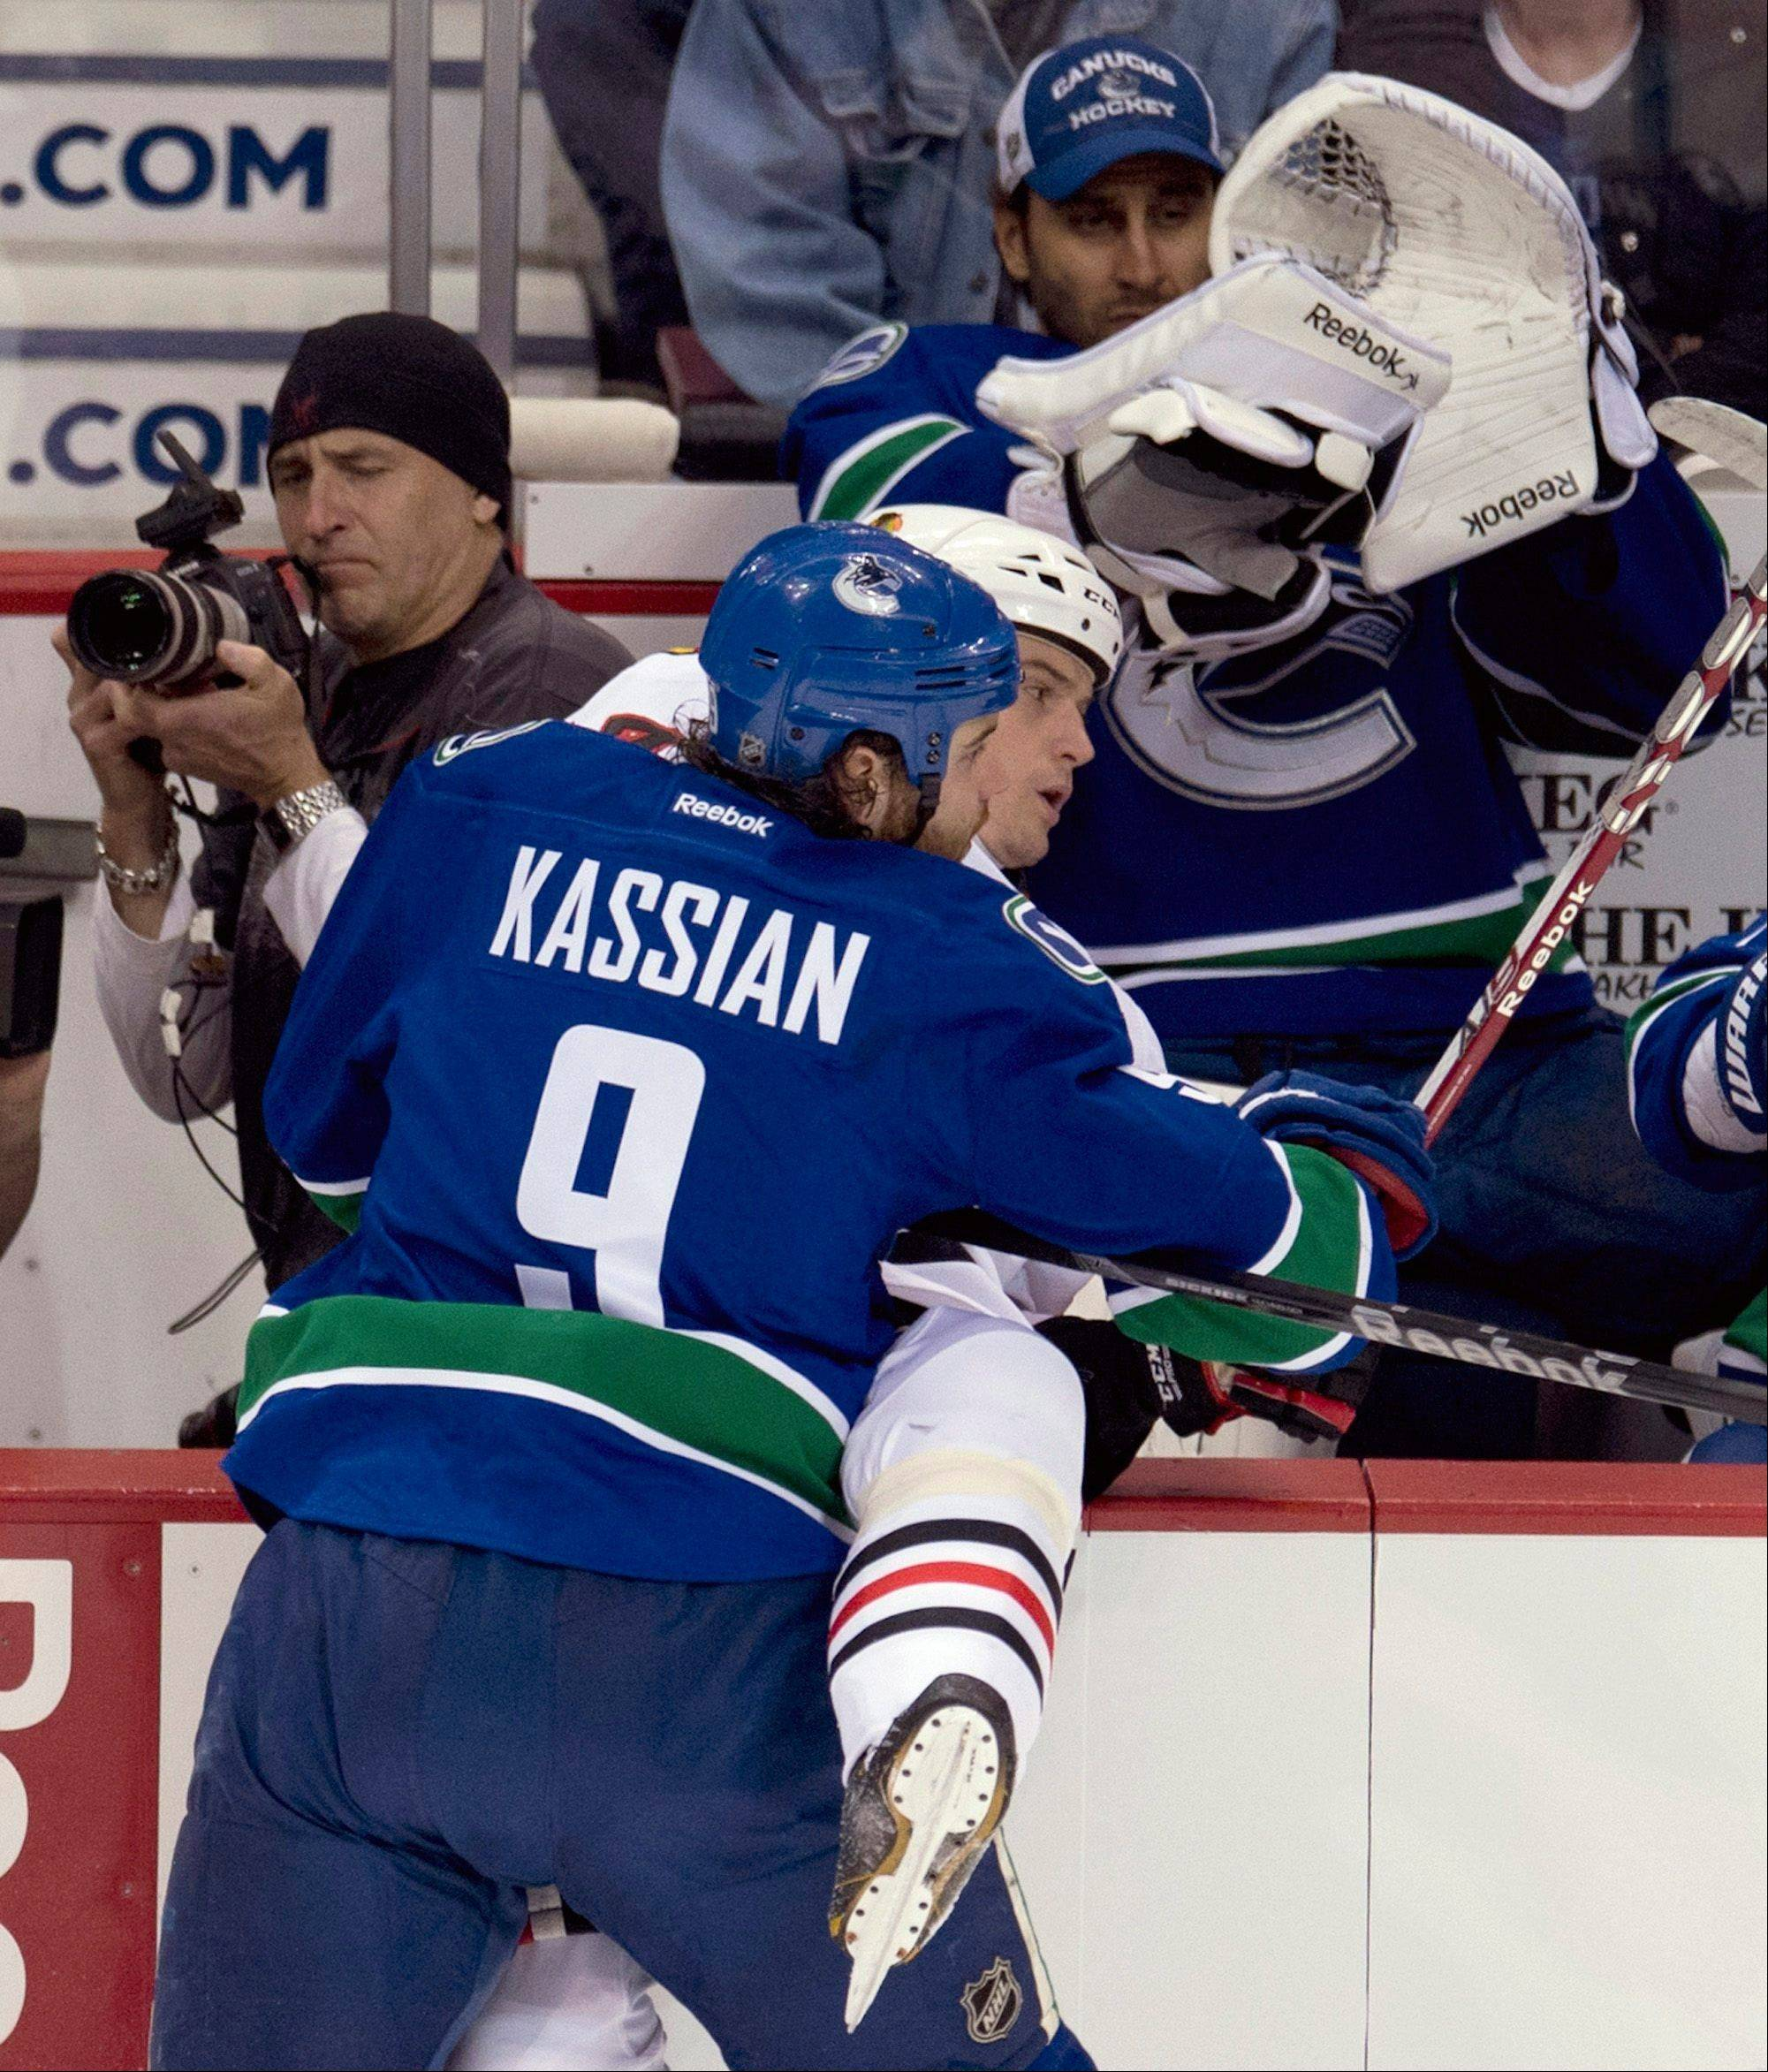 Vancouver Canucks right wing Zack Kassian (9) puts Chicago Blackhawks Sheldon Brookbank into the boards as Vancouver Canucks goalie Roberto Luongo (1) watches during the first period of an NHL hockey game in Vancouver, B.C. on Monday, April 22, 2013.